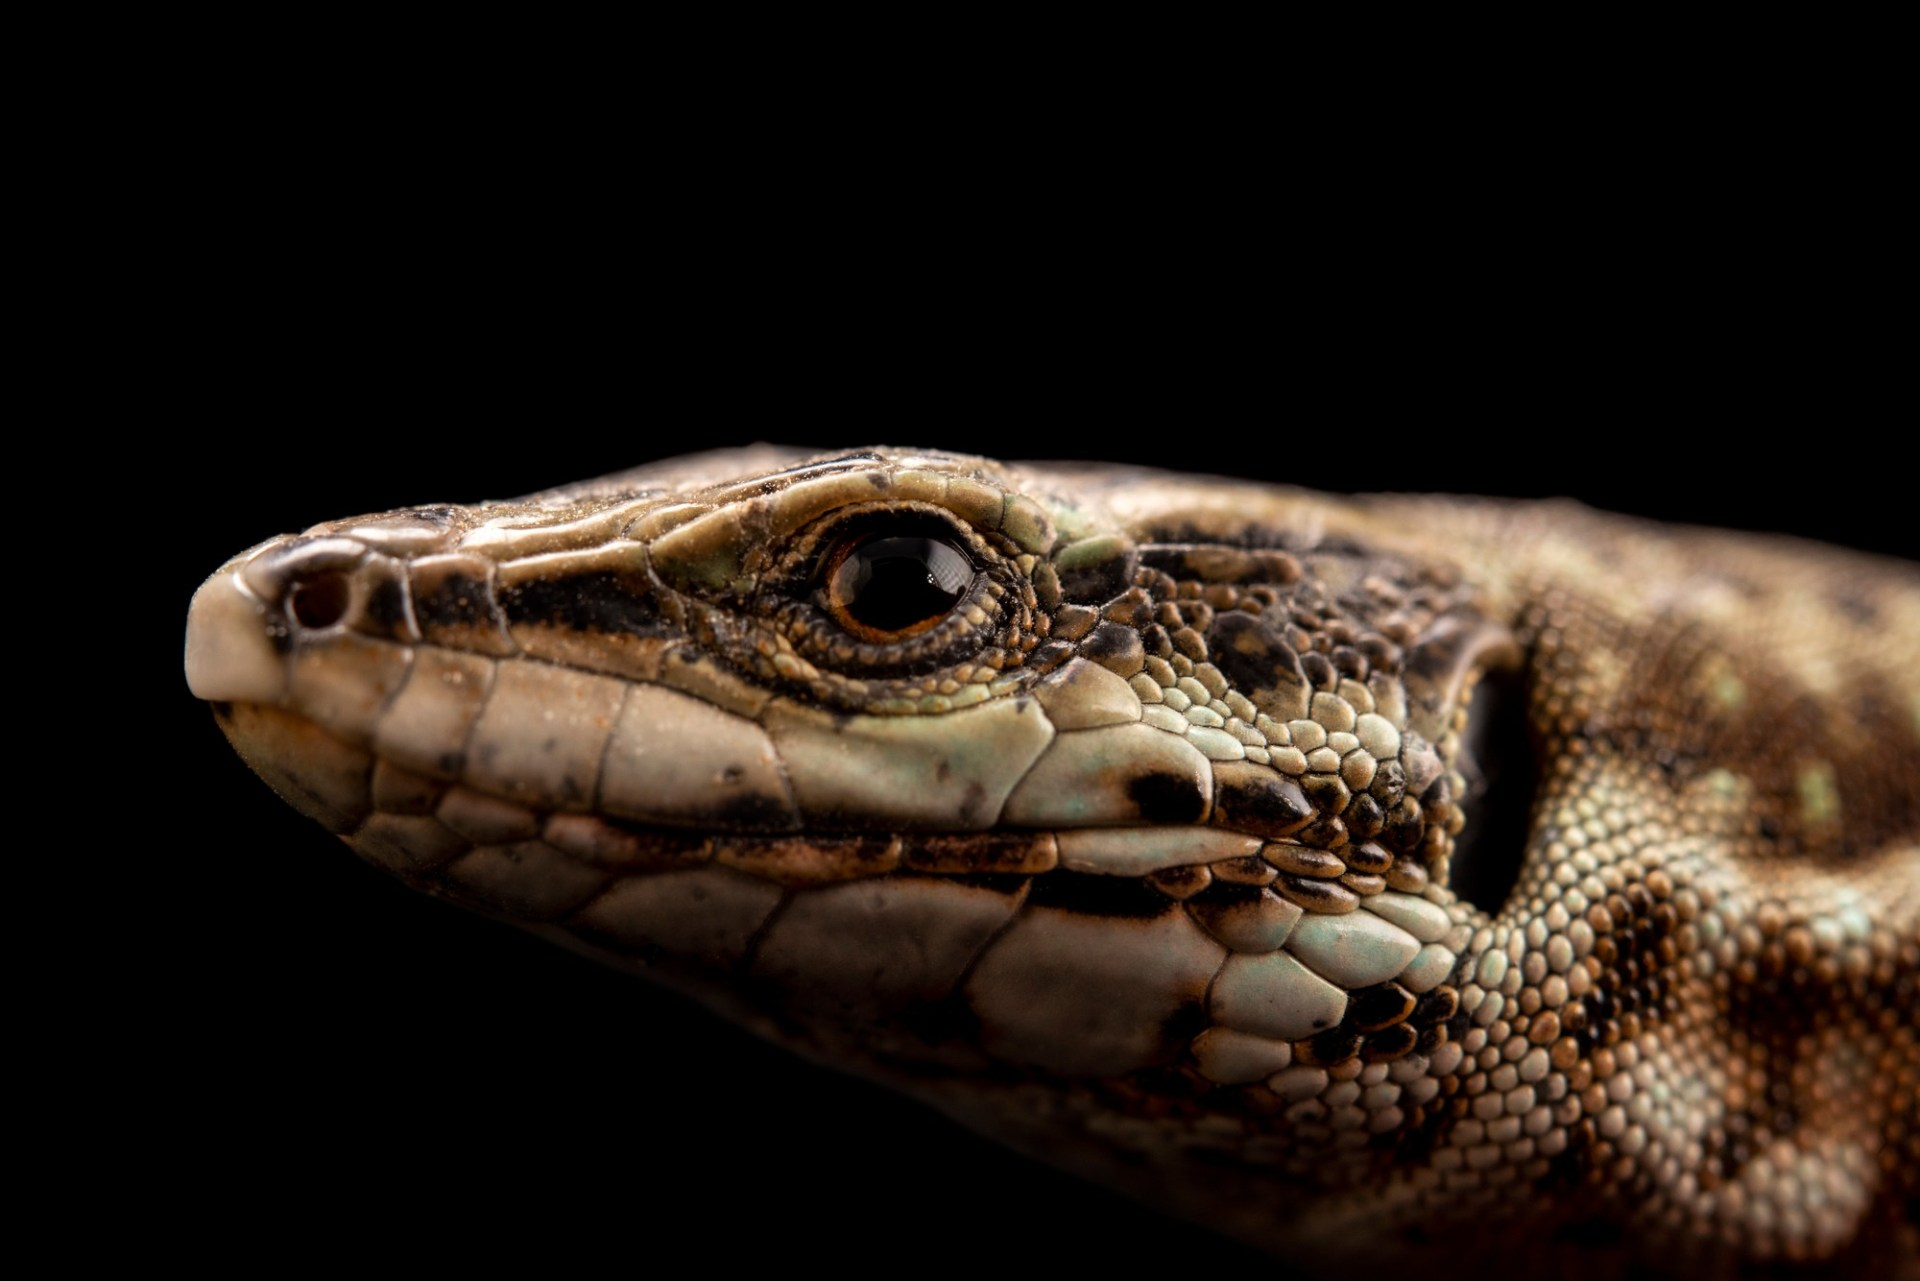 Photo: A critically endangered aeolian wall lizard (Podarcis raffonei) at the Rome Zoo.